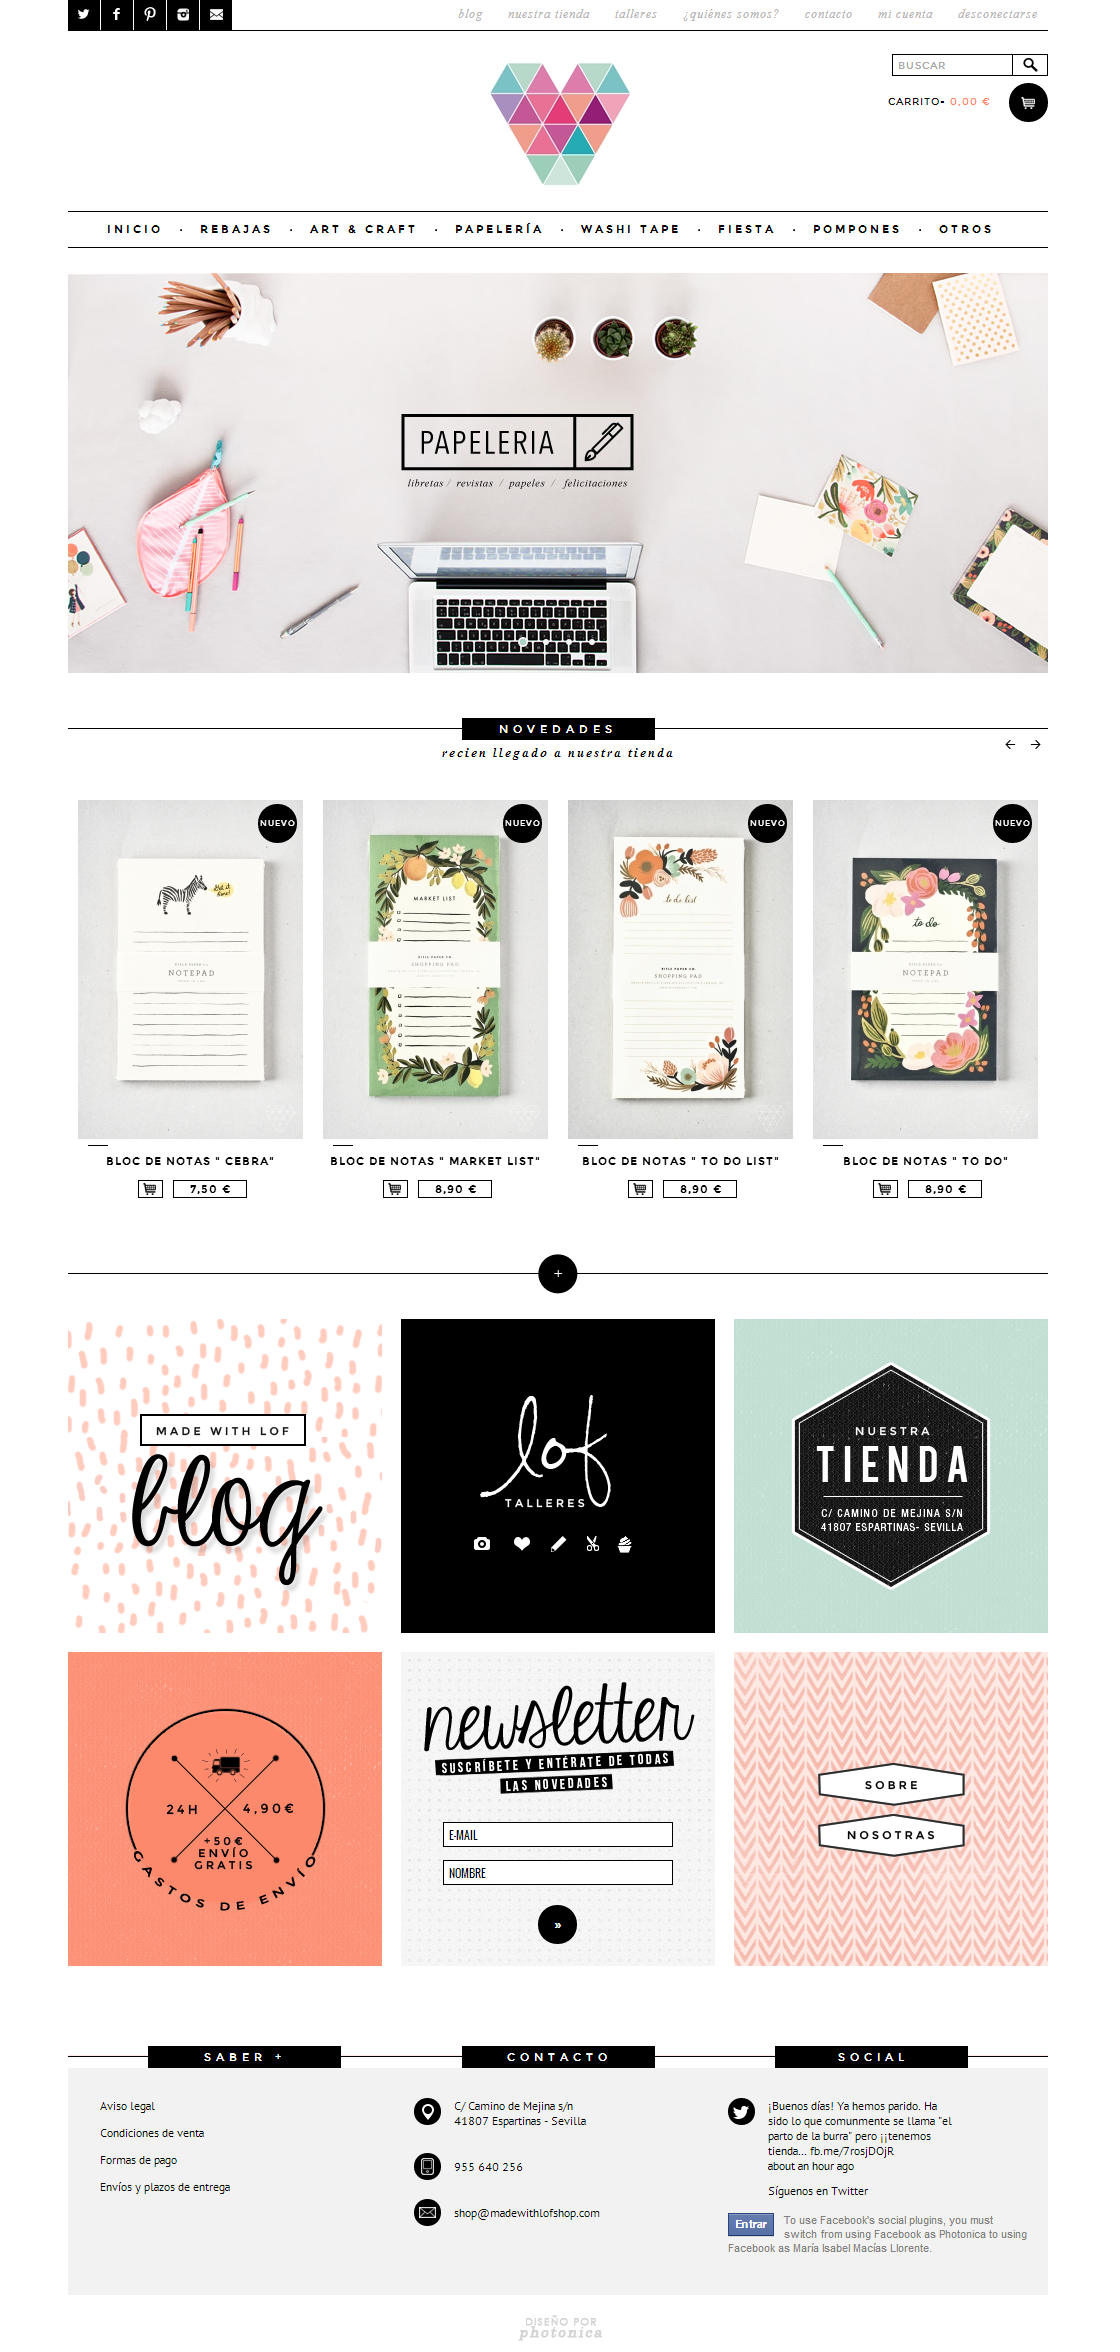 Online shop I love this layout, needs